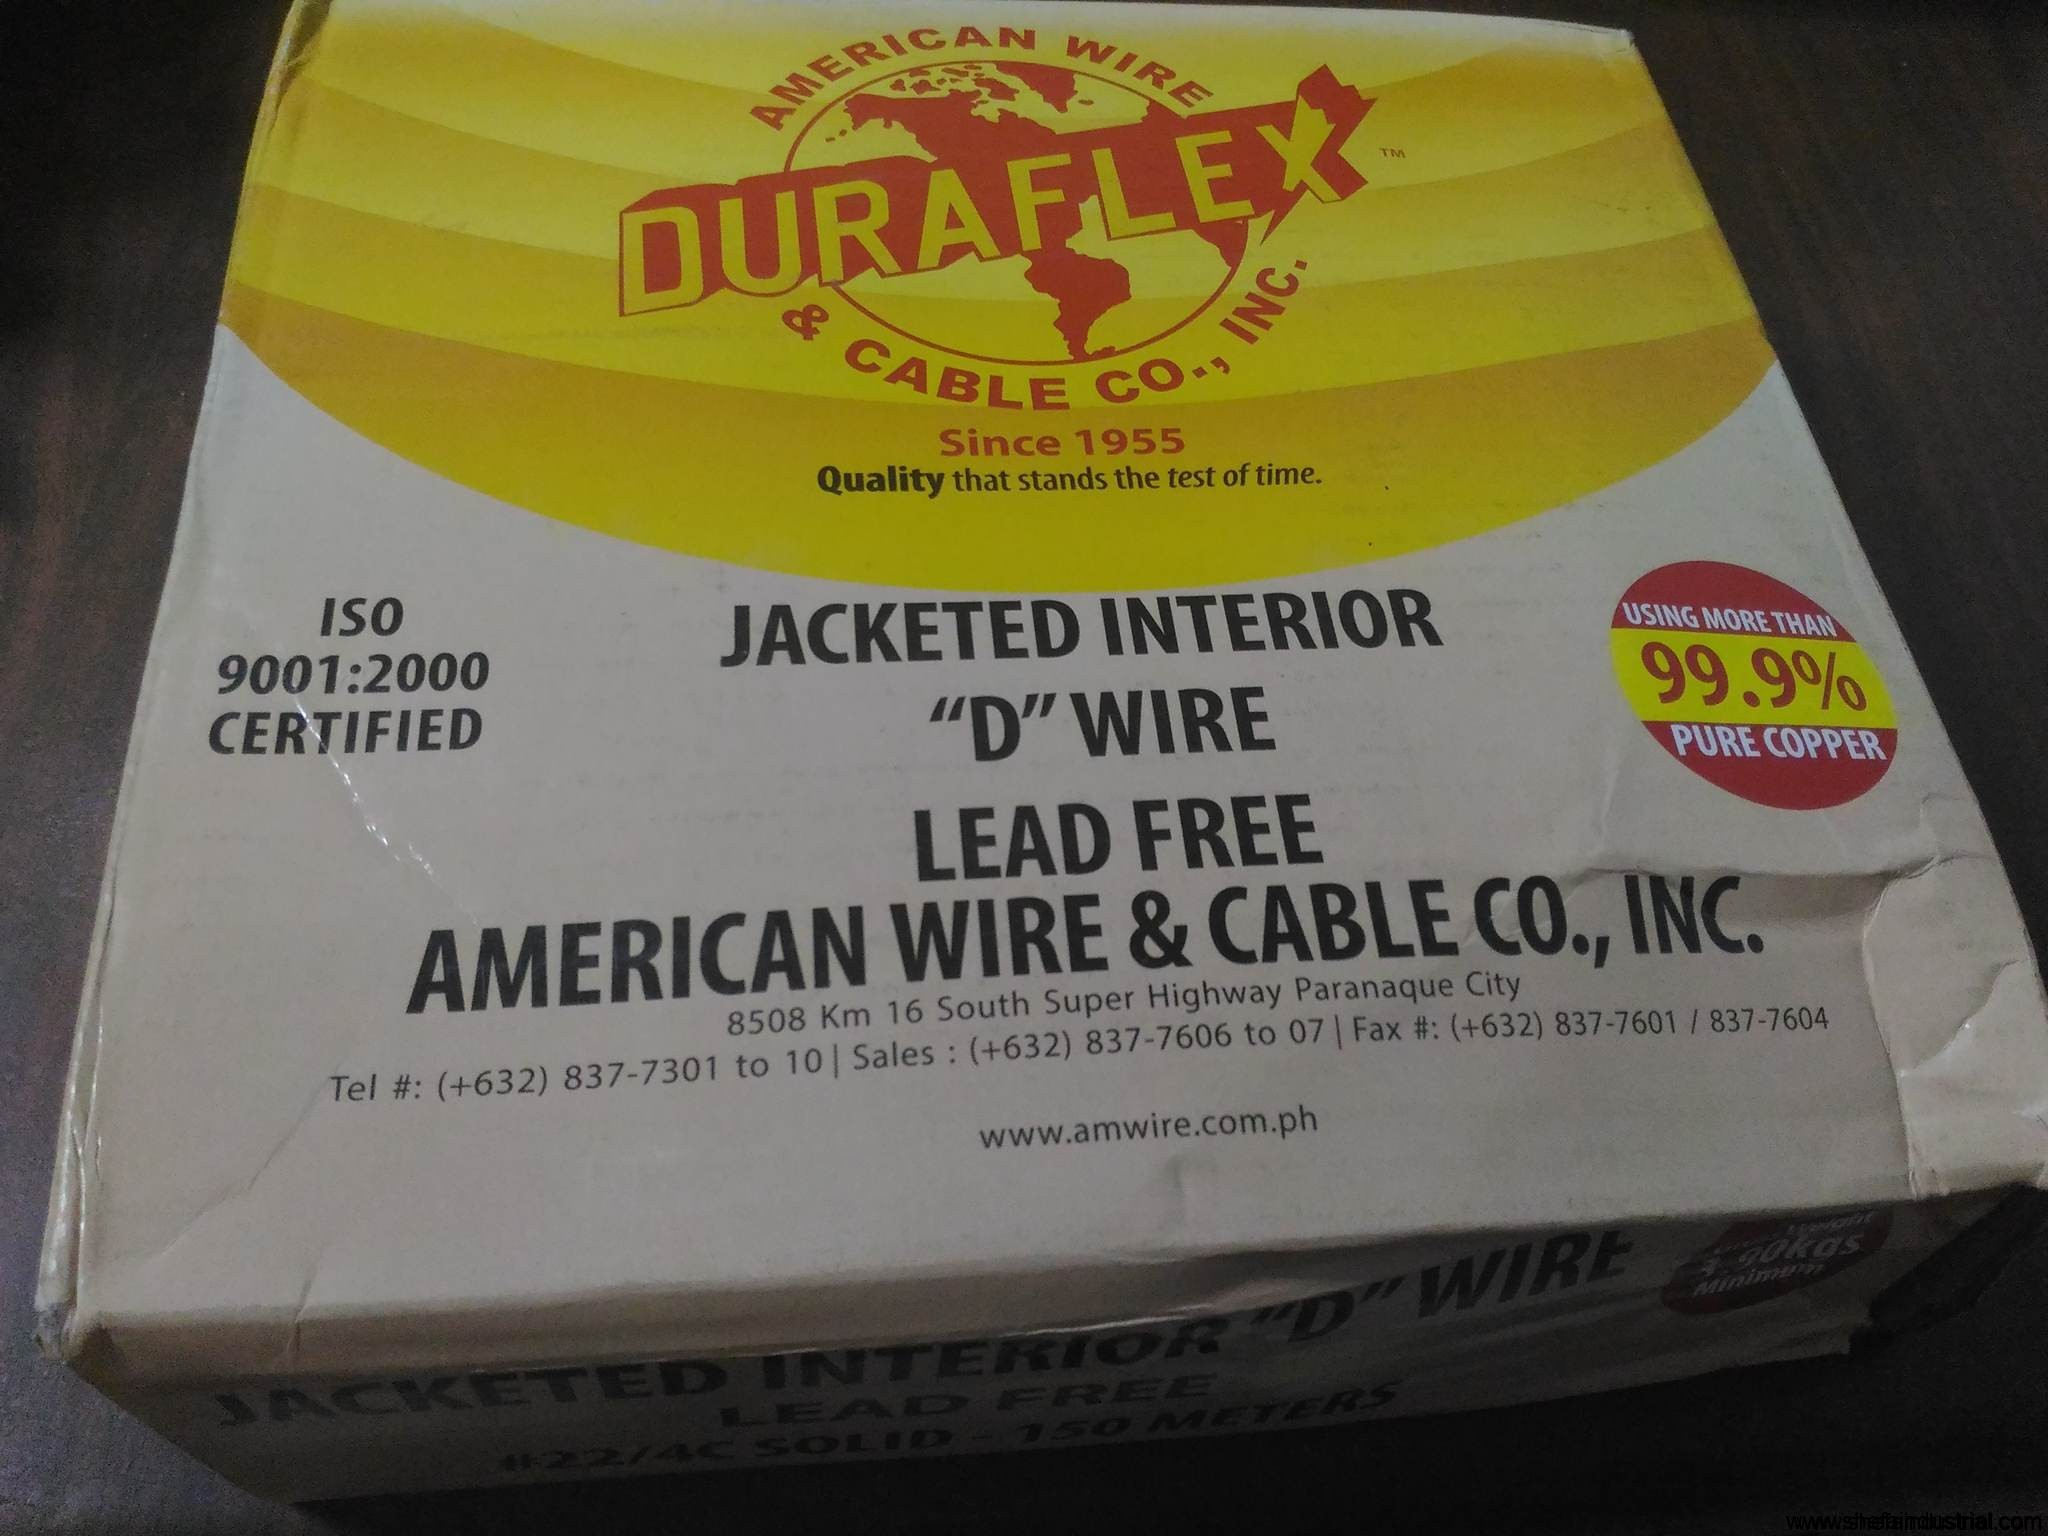 duraflex-jacketed-indoor-telephone-cable-d-wire-lead-free-4-wires ...